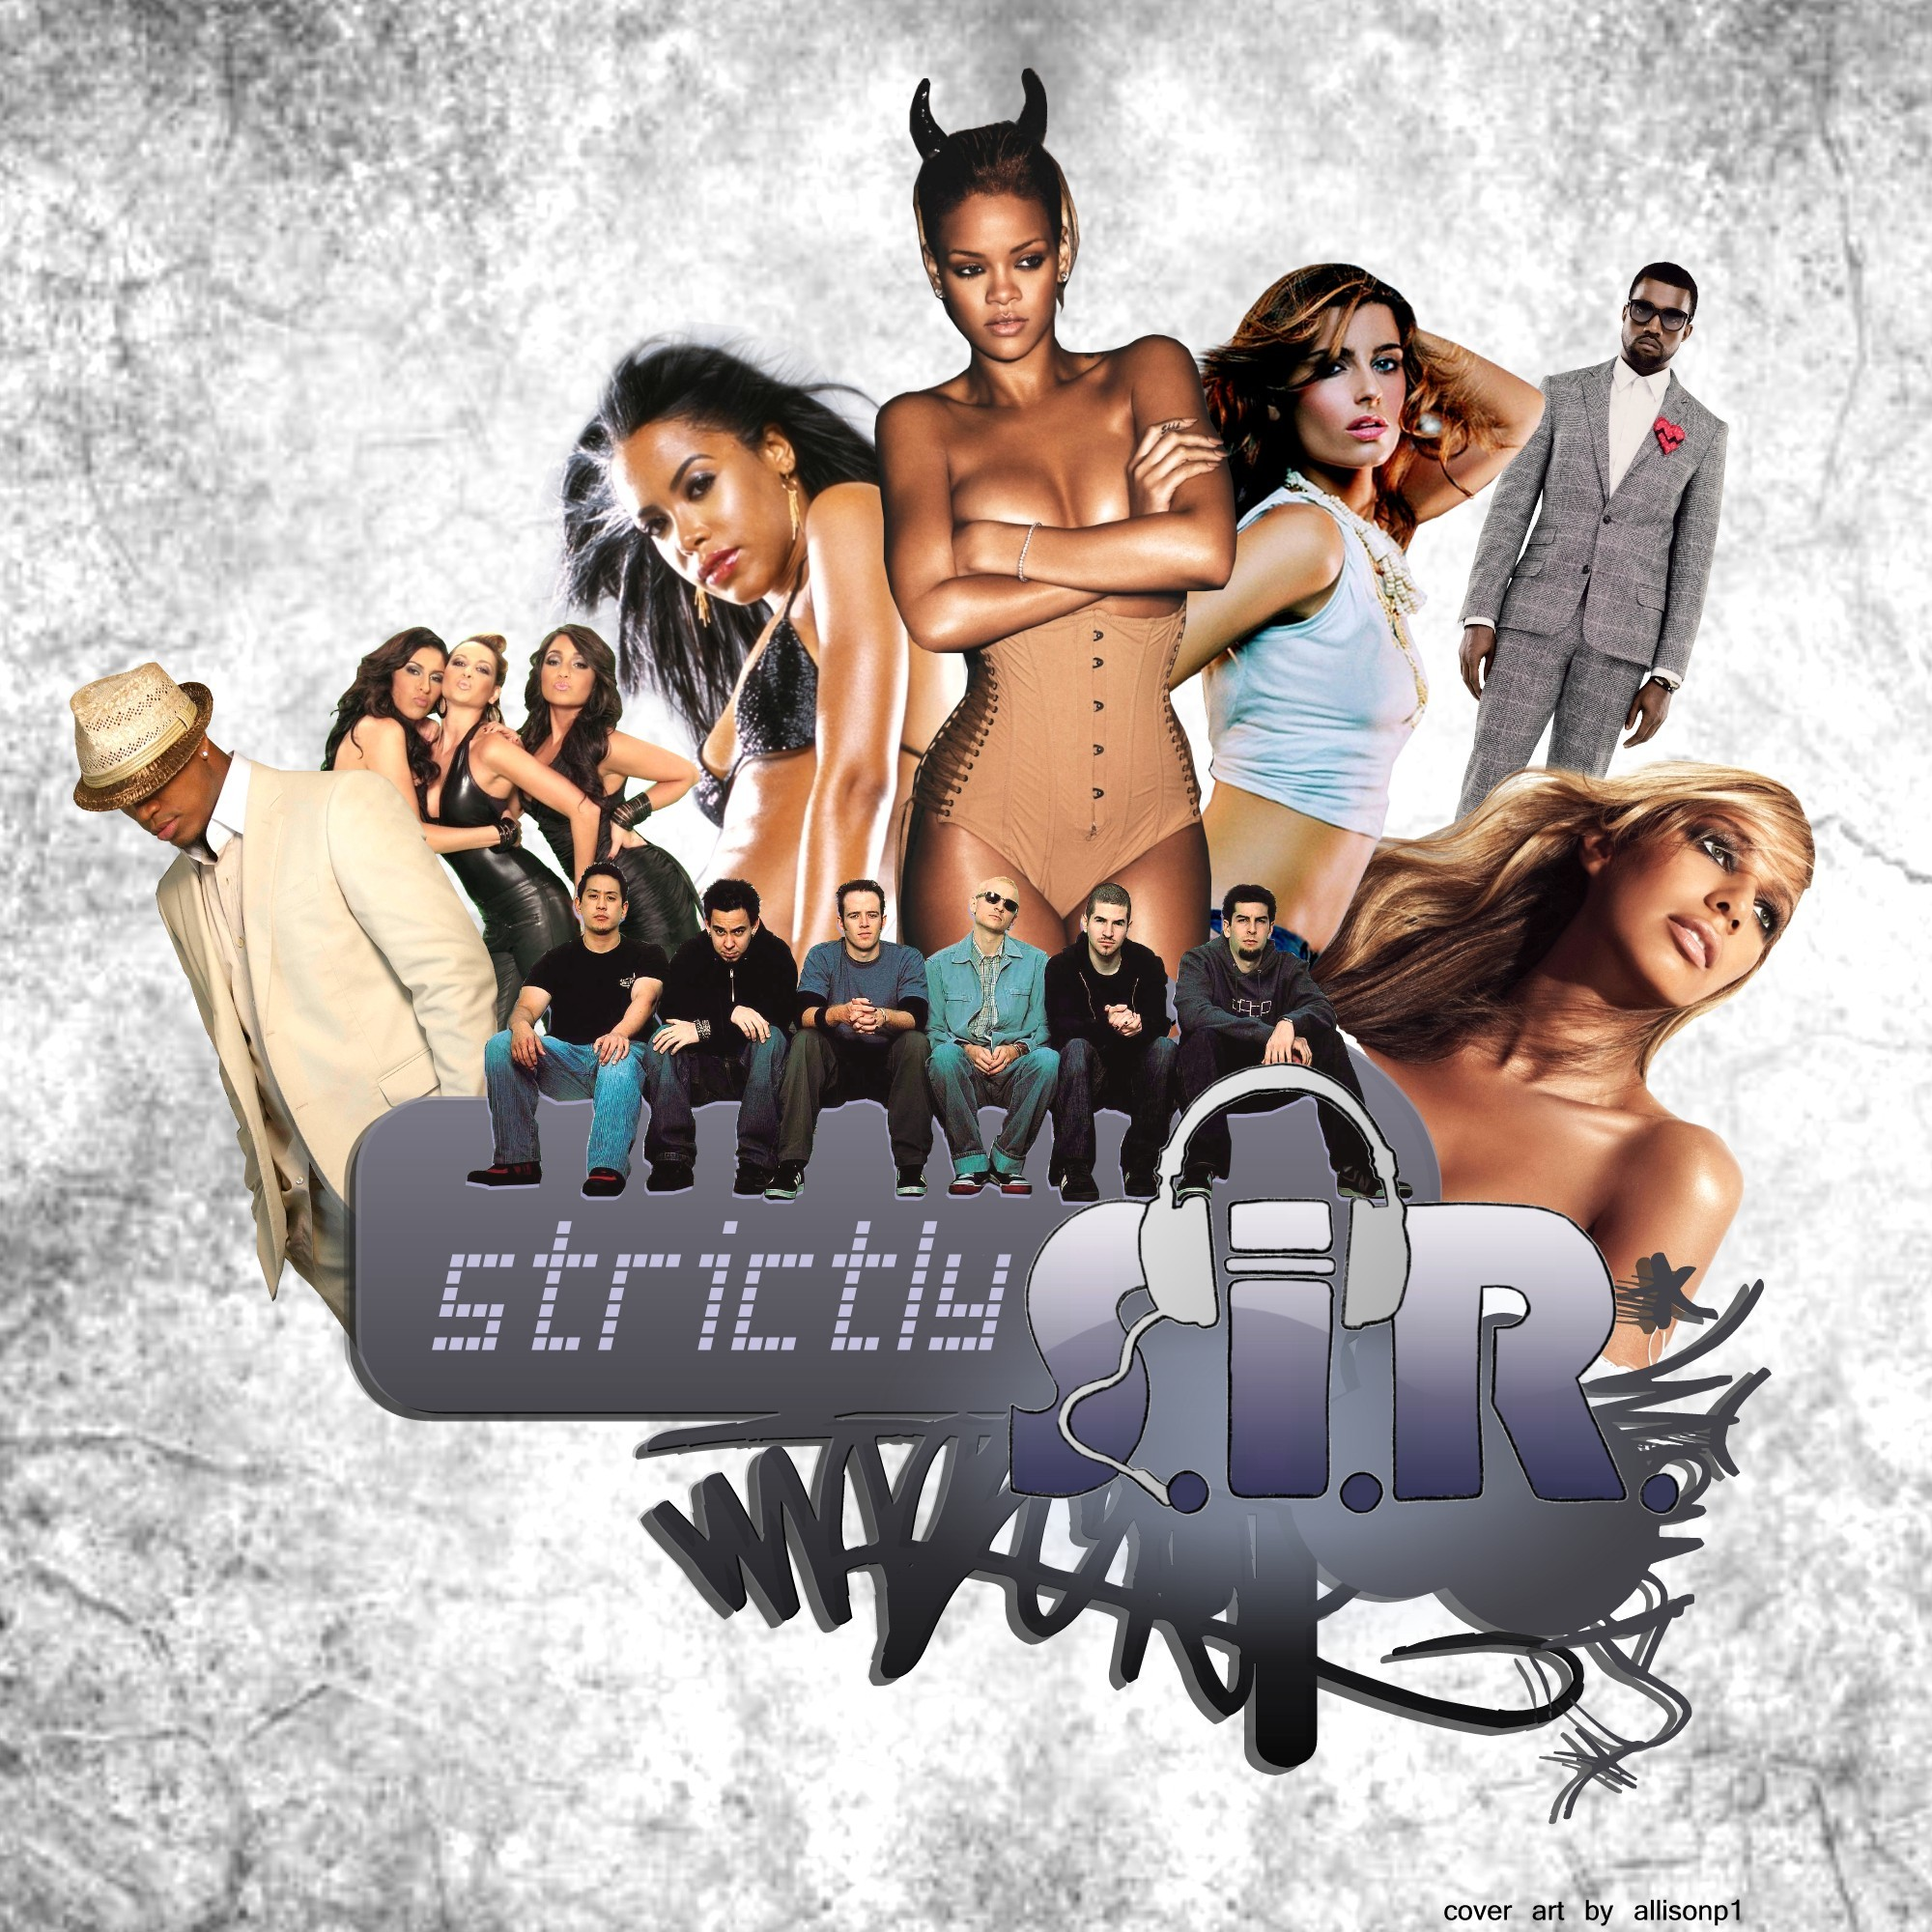 05 - Aaliyah vs. Chris Winland - Rock The Boat (S.I.R.'s Sunset Remix)